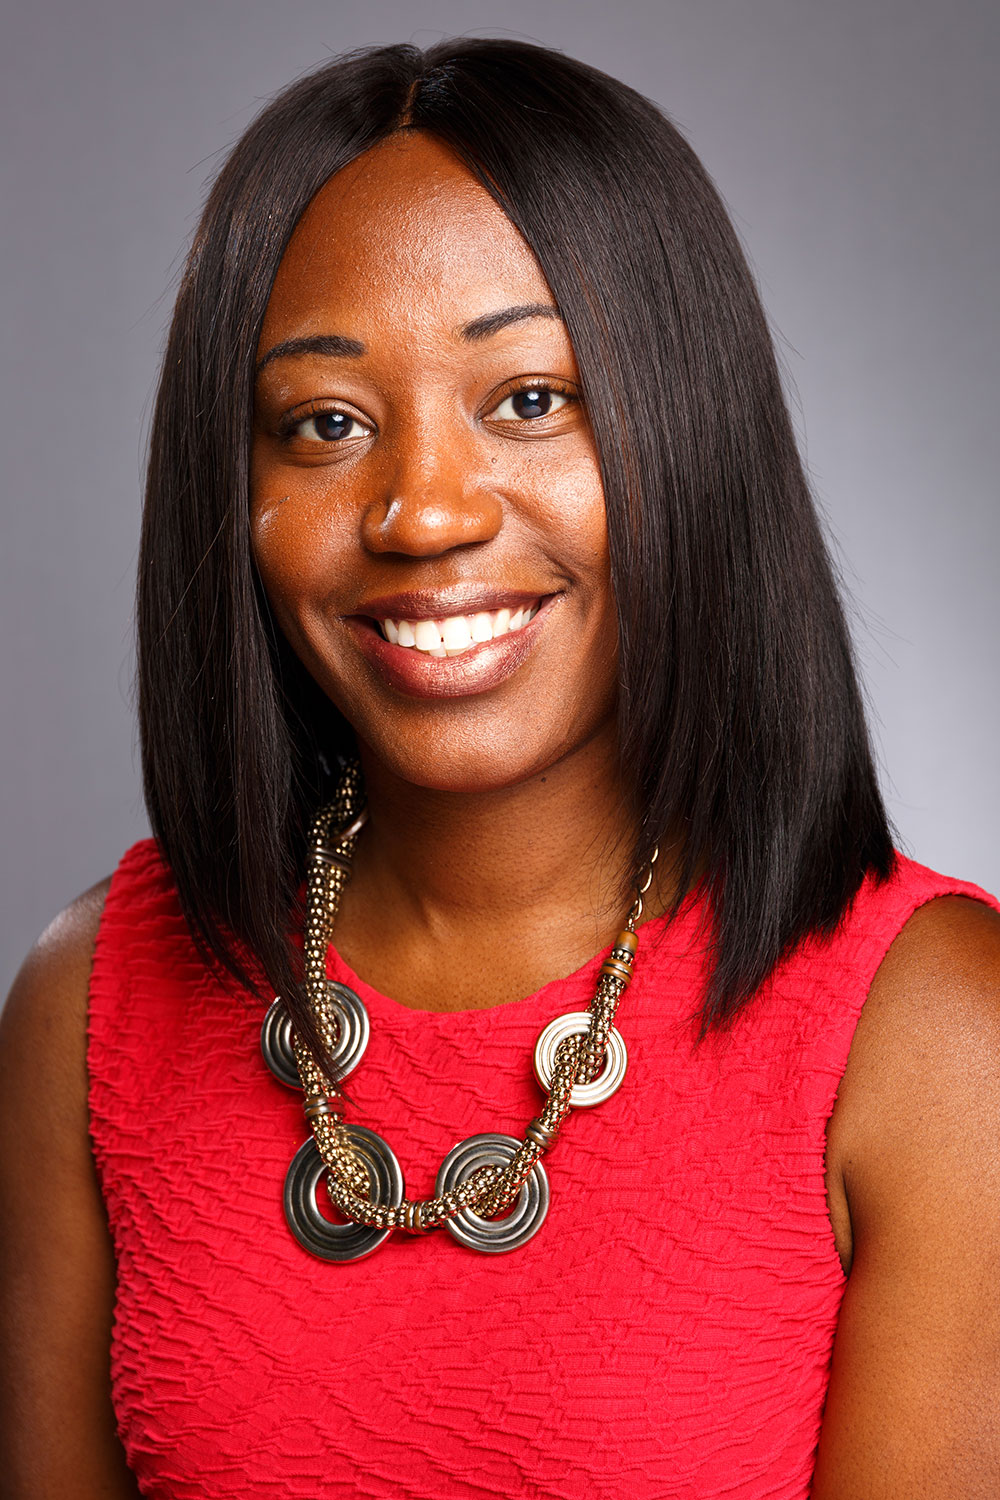 bio photo | Meet Latrice | LiveWell Group | Therapist & Counselor | Cincinnati, OH